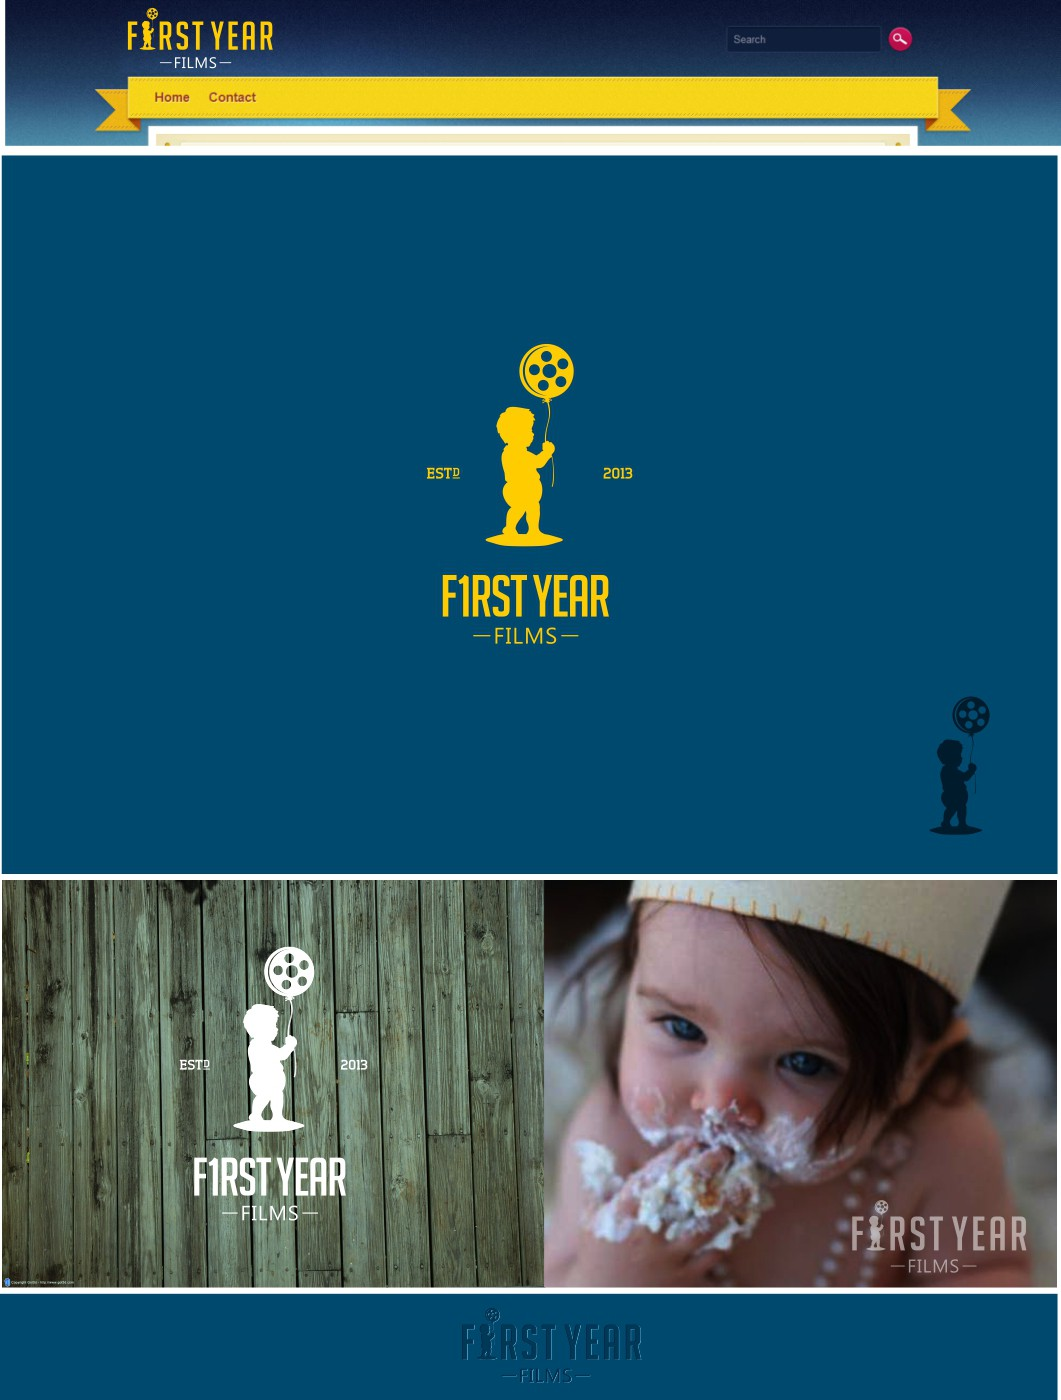 Create the next logo for First Year Films